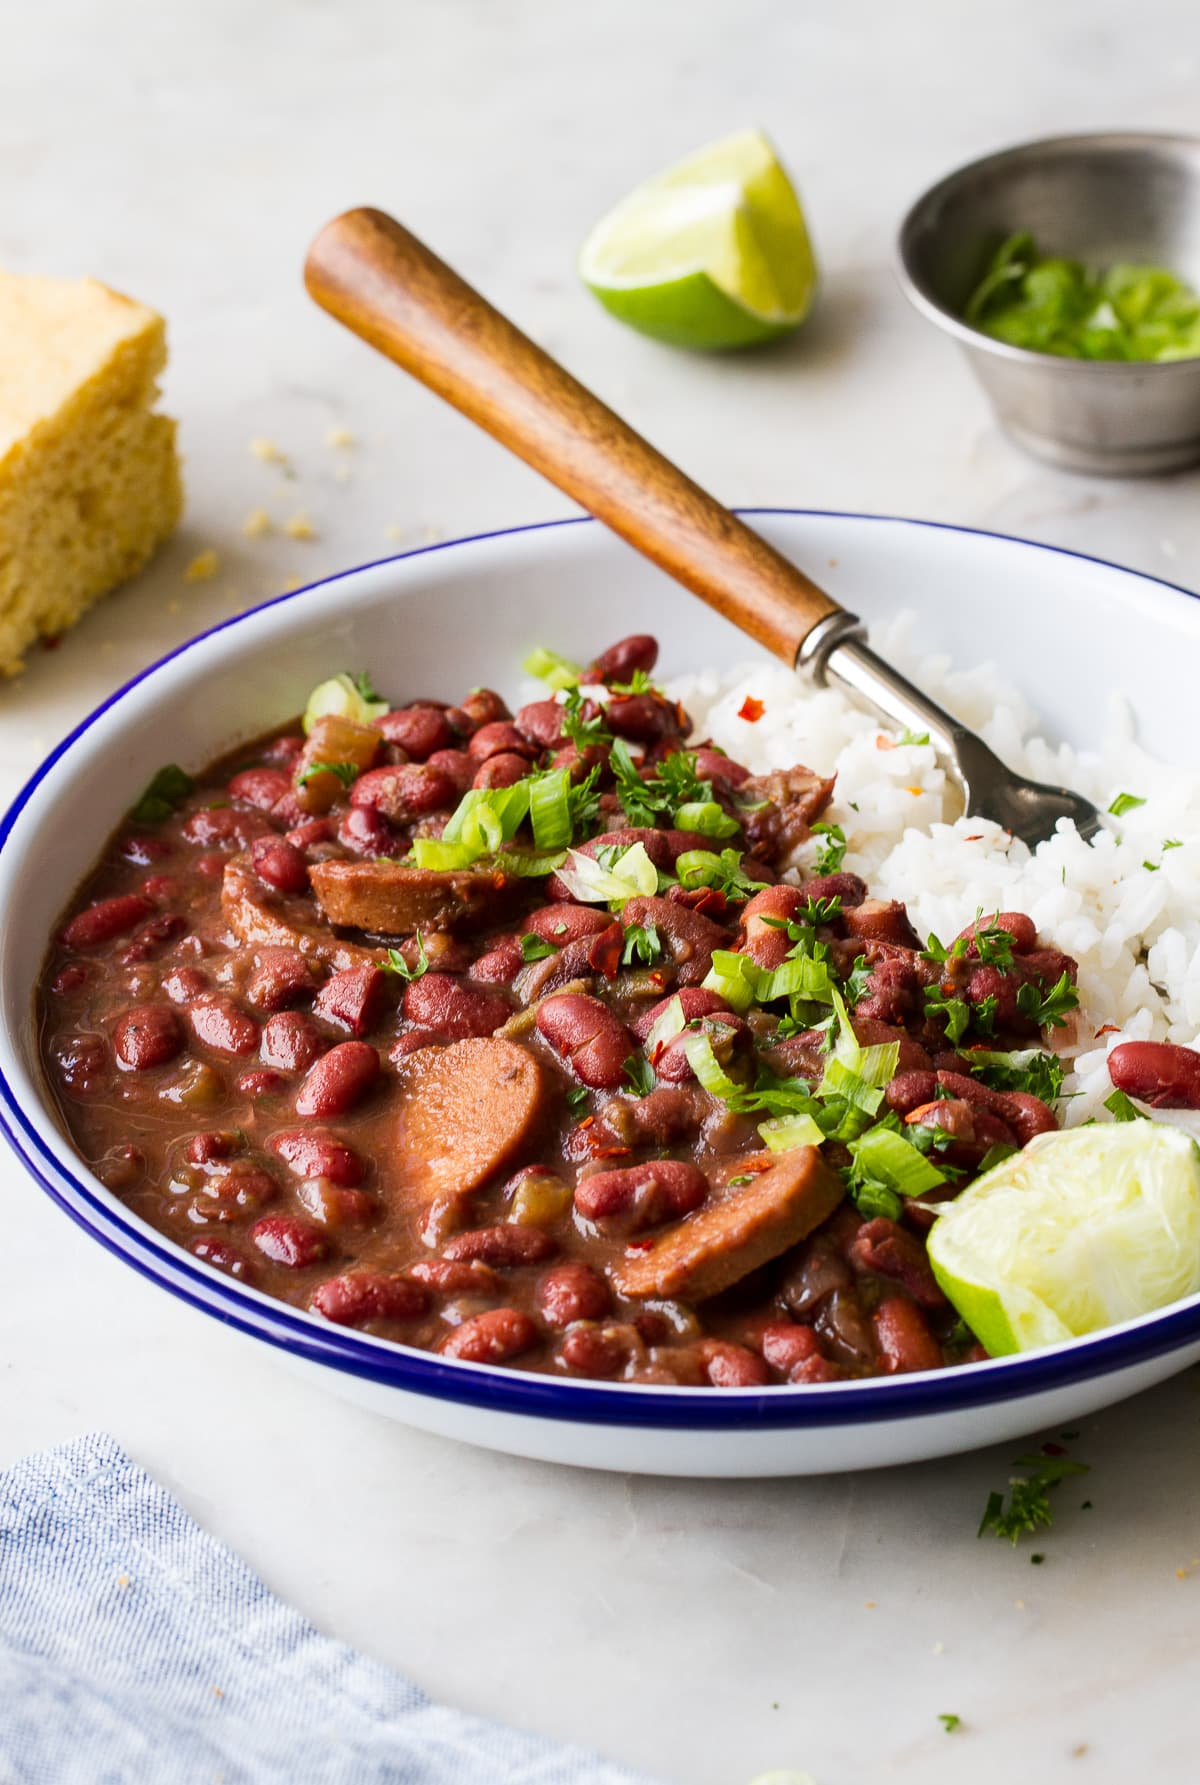 side angle view of a white bowl with blue rim filled with a serving of vegan red beans and rice.